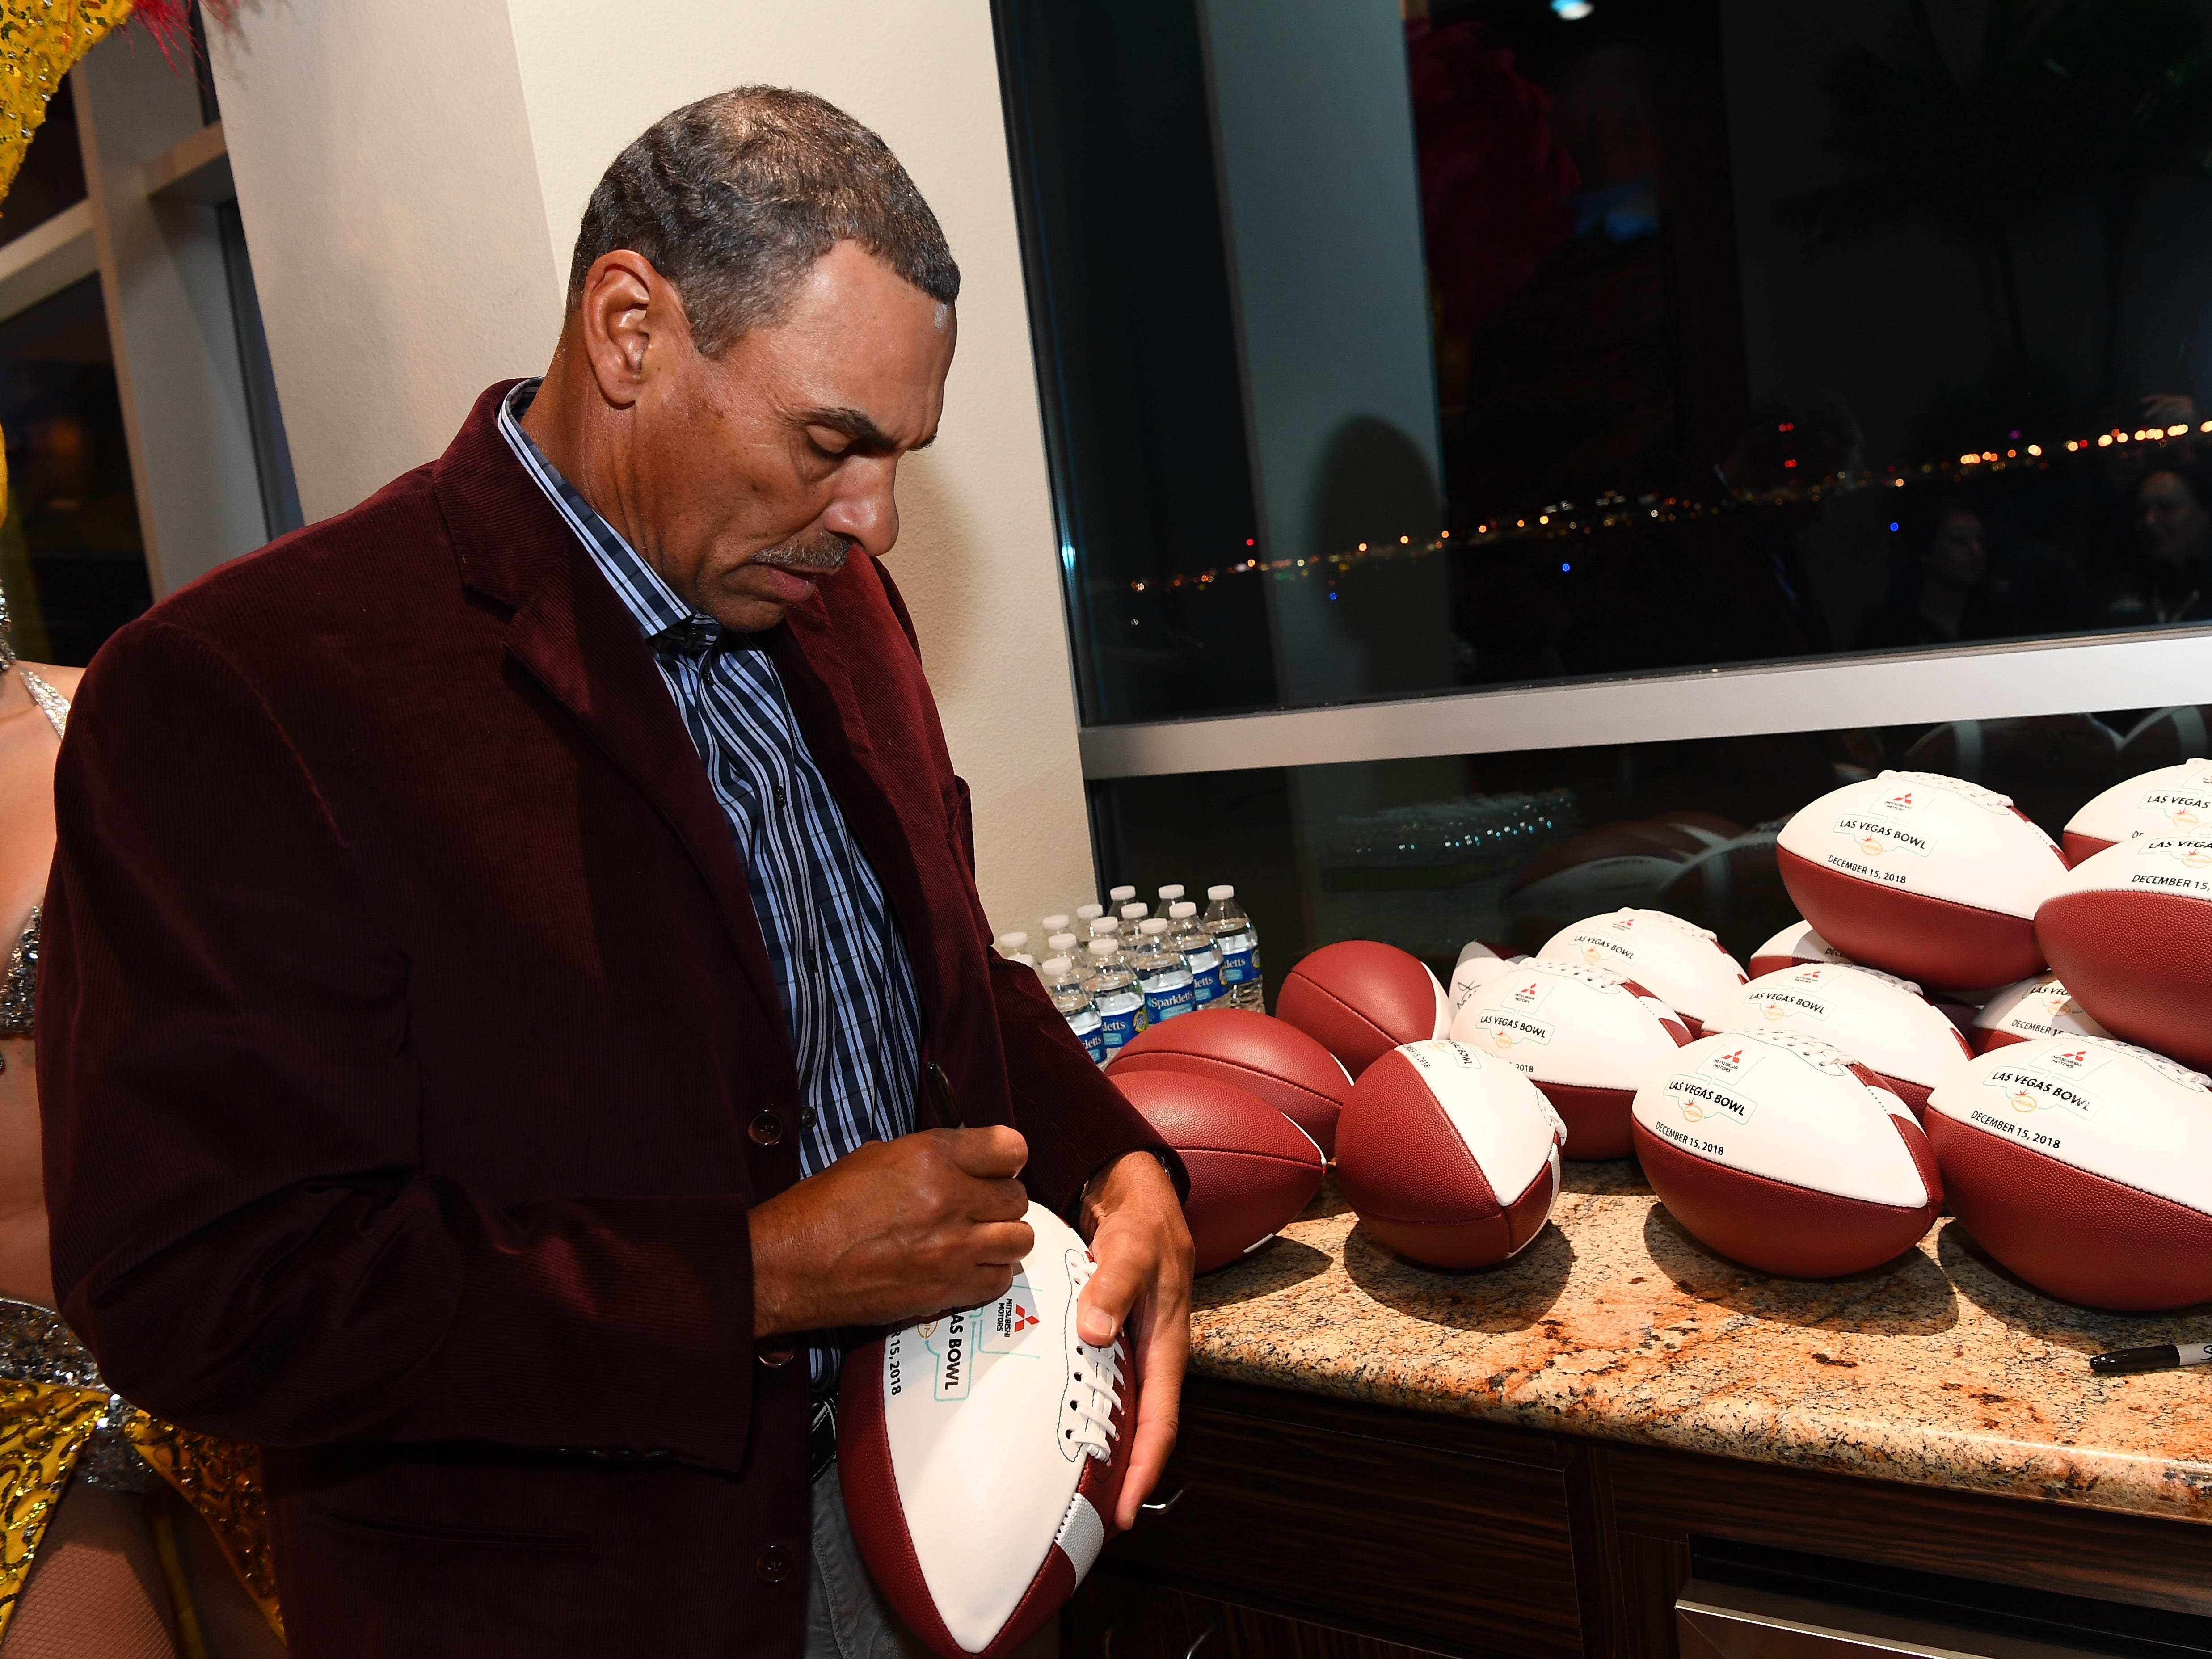 ASU head coach Herm Edwards signs footballs during a media event in Las Vegas on Tuesday.